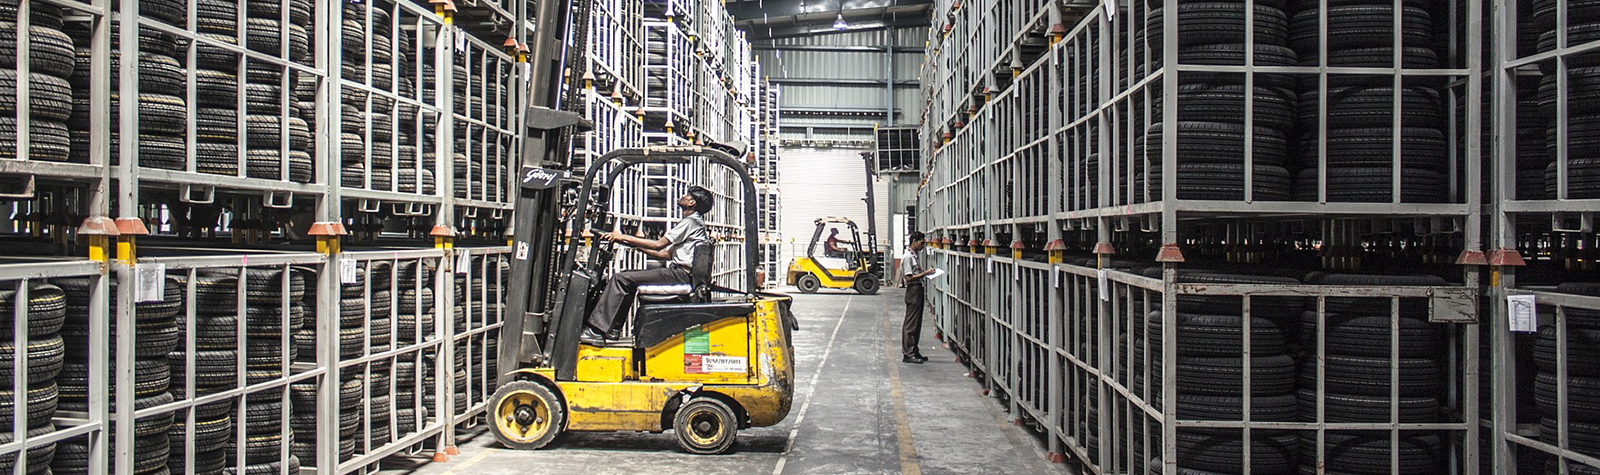 How Music Improves Warehouse Productivity